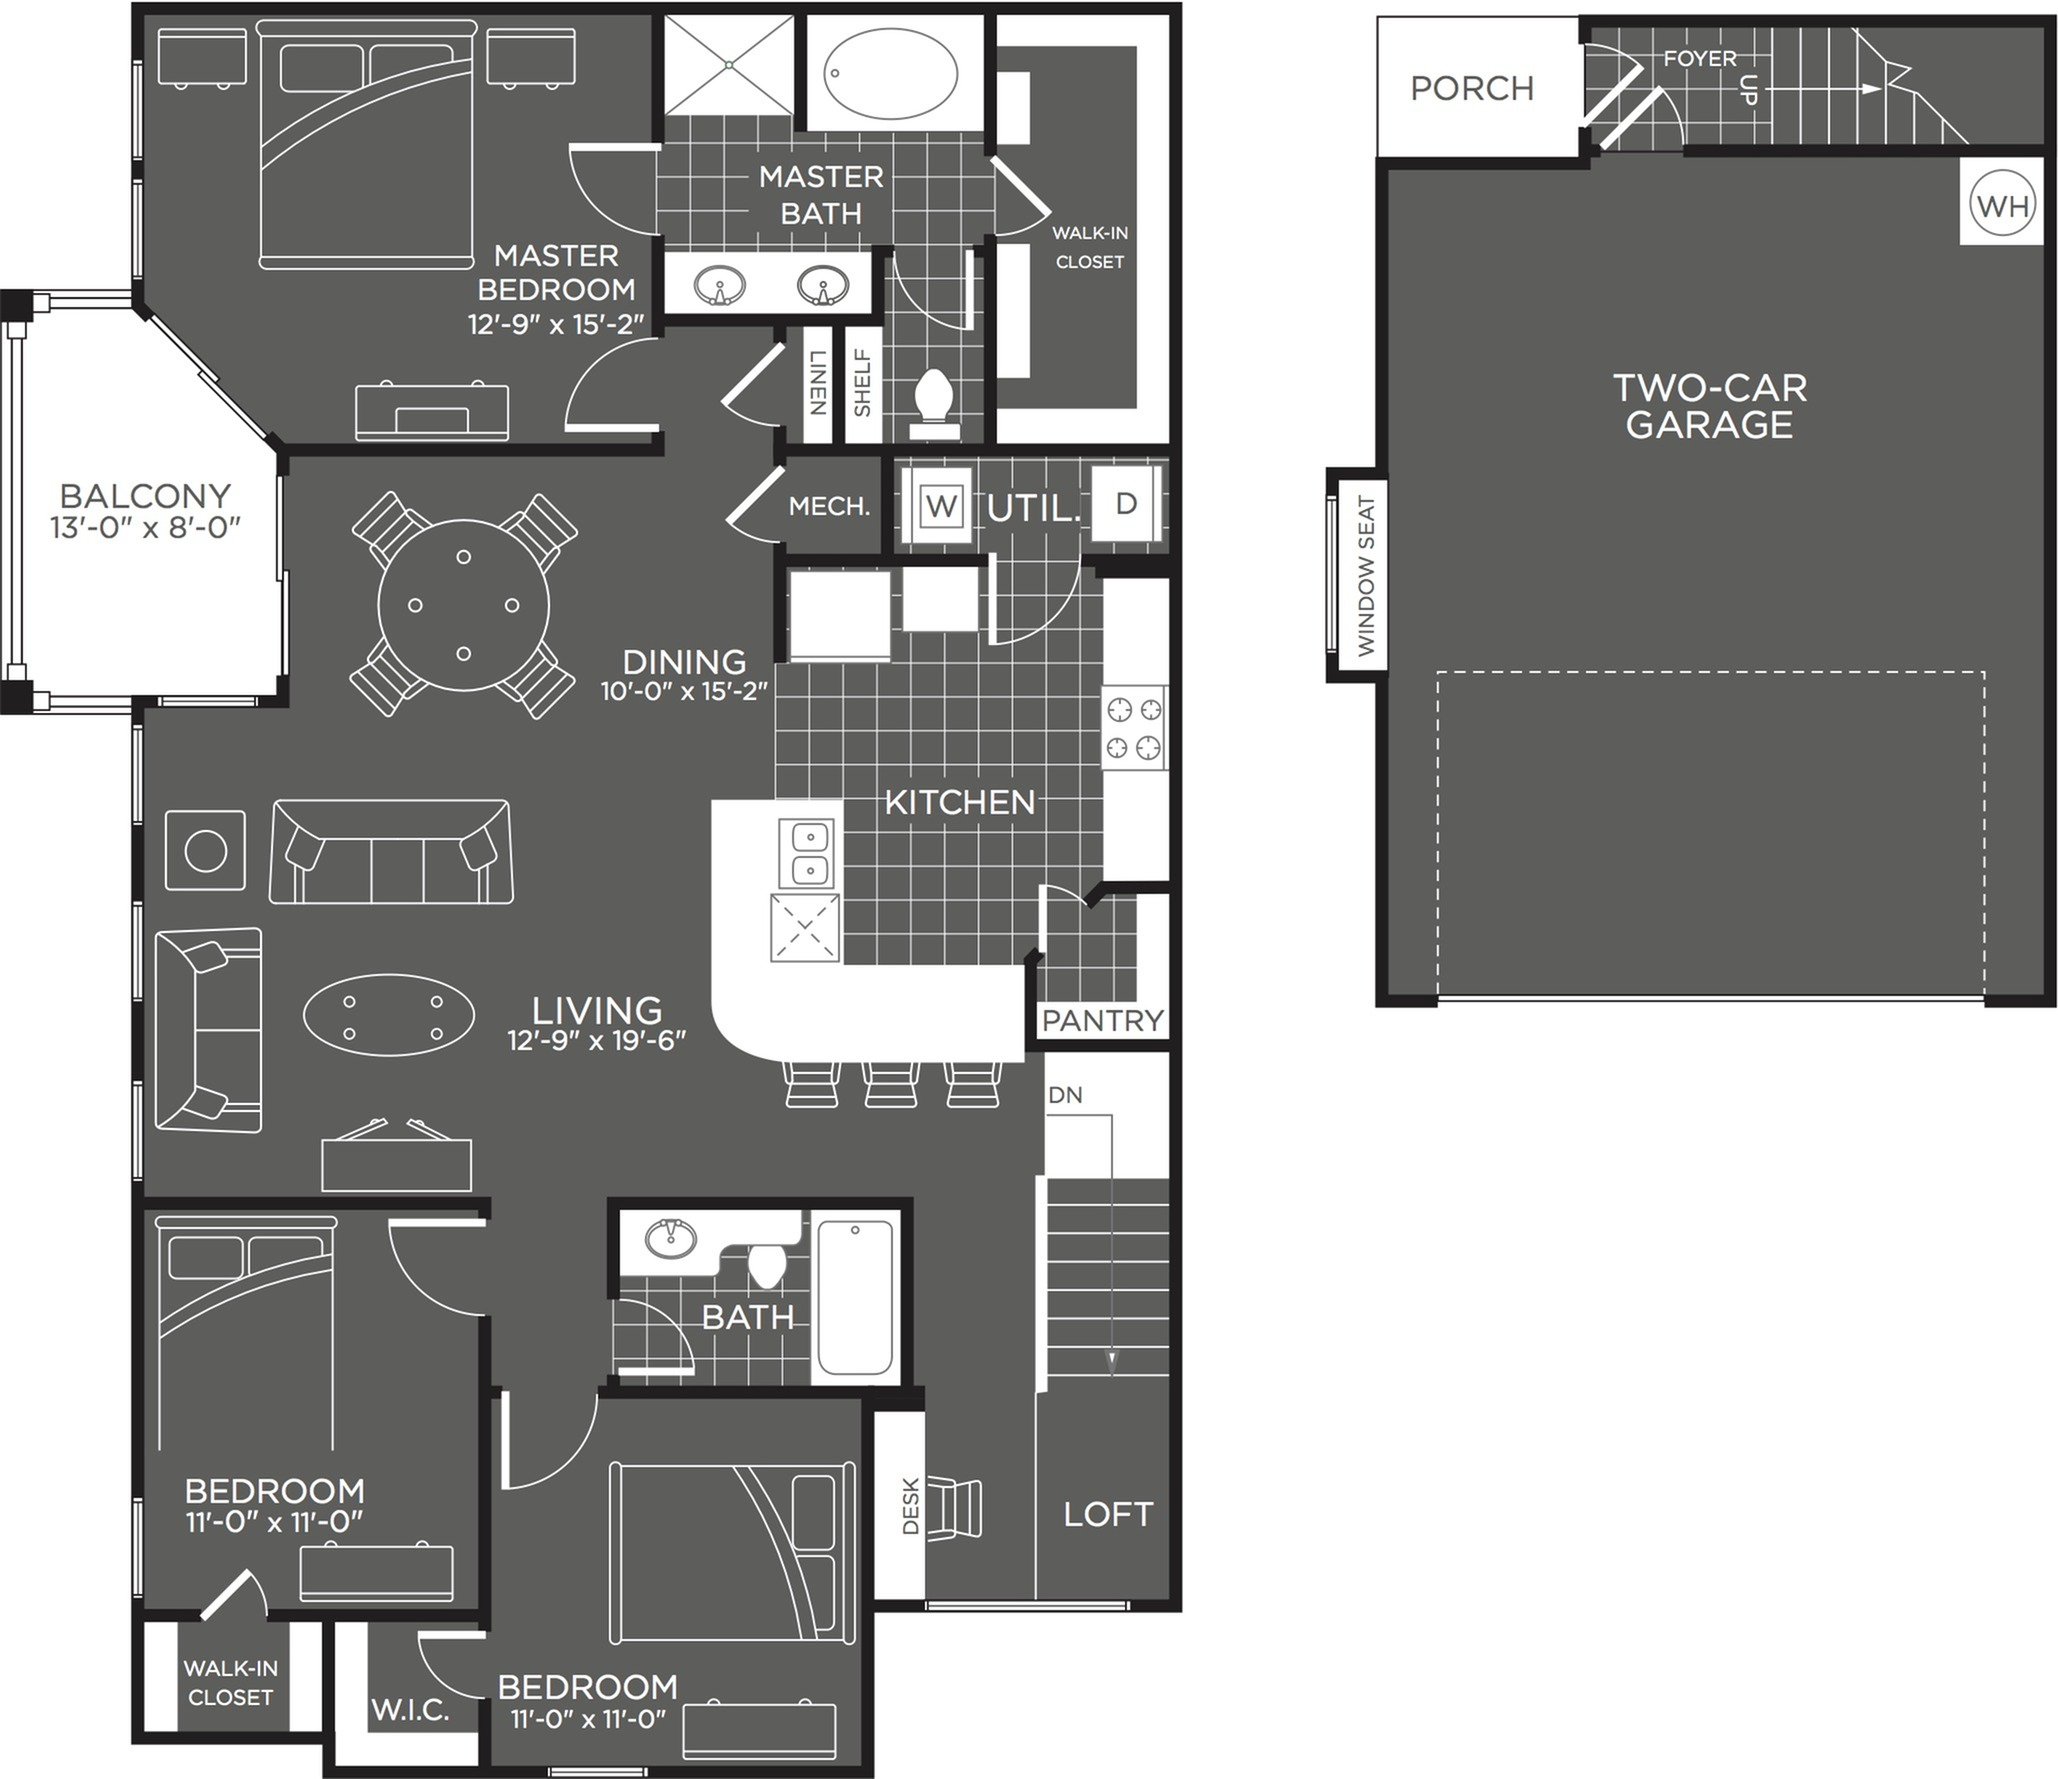 3 Bdrm Floor Plan | Luxury Apartments In San Antonio Texas | The Mansions at Briggs Ranch